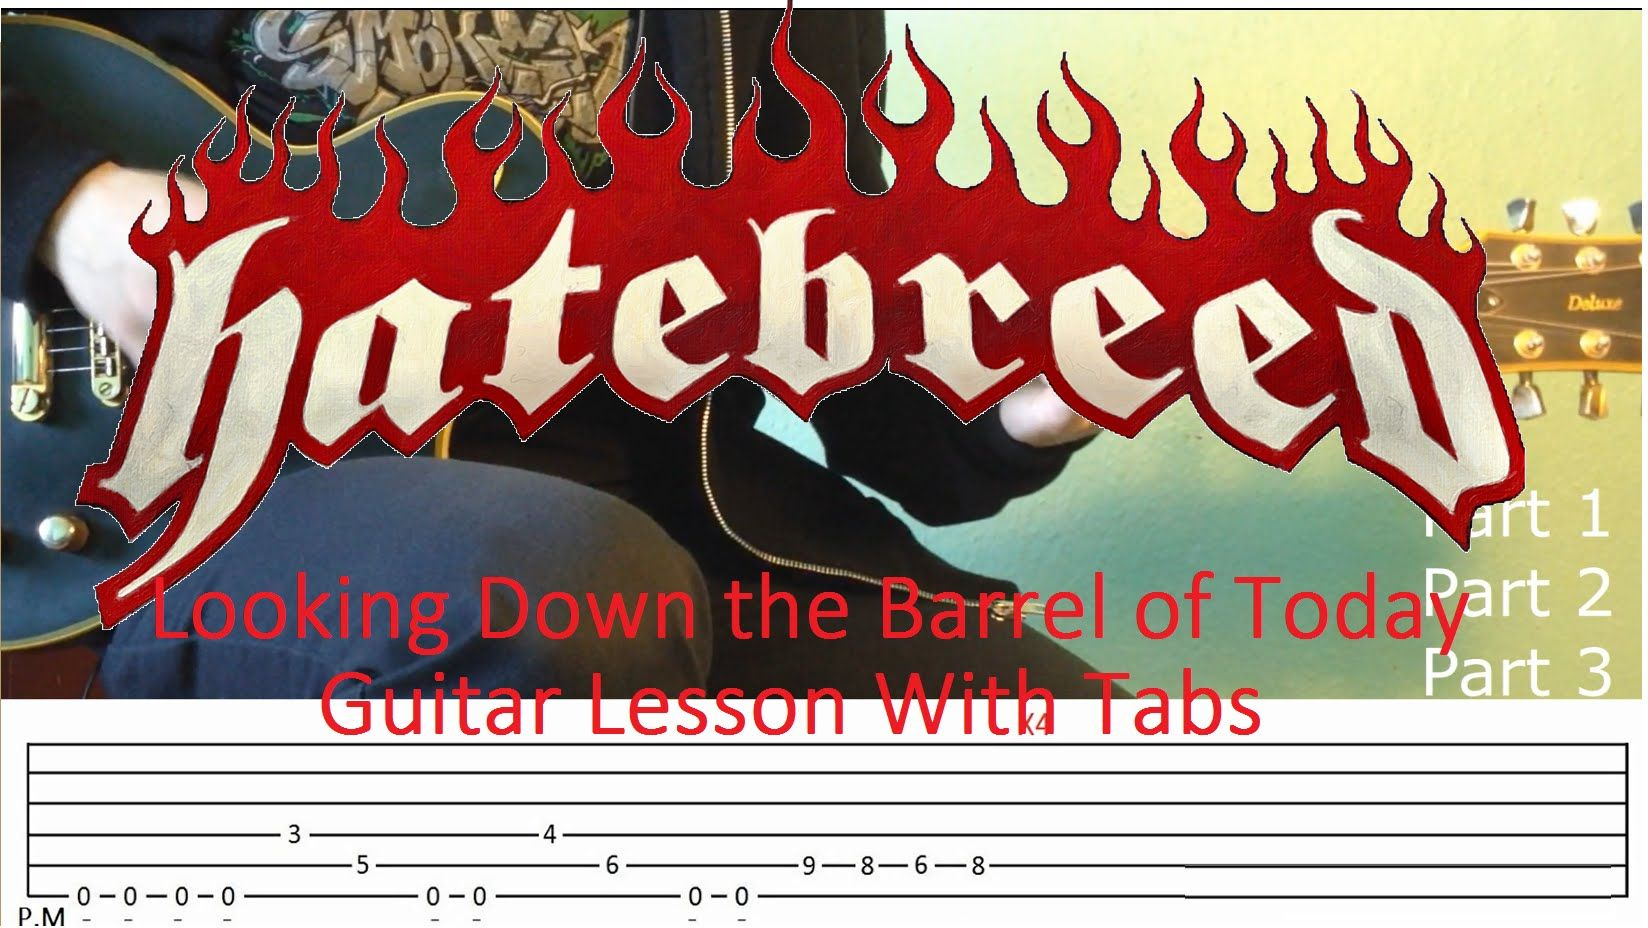 Hatebreed Looking Down the Barrel of Today Guitar Lesson